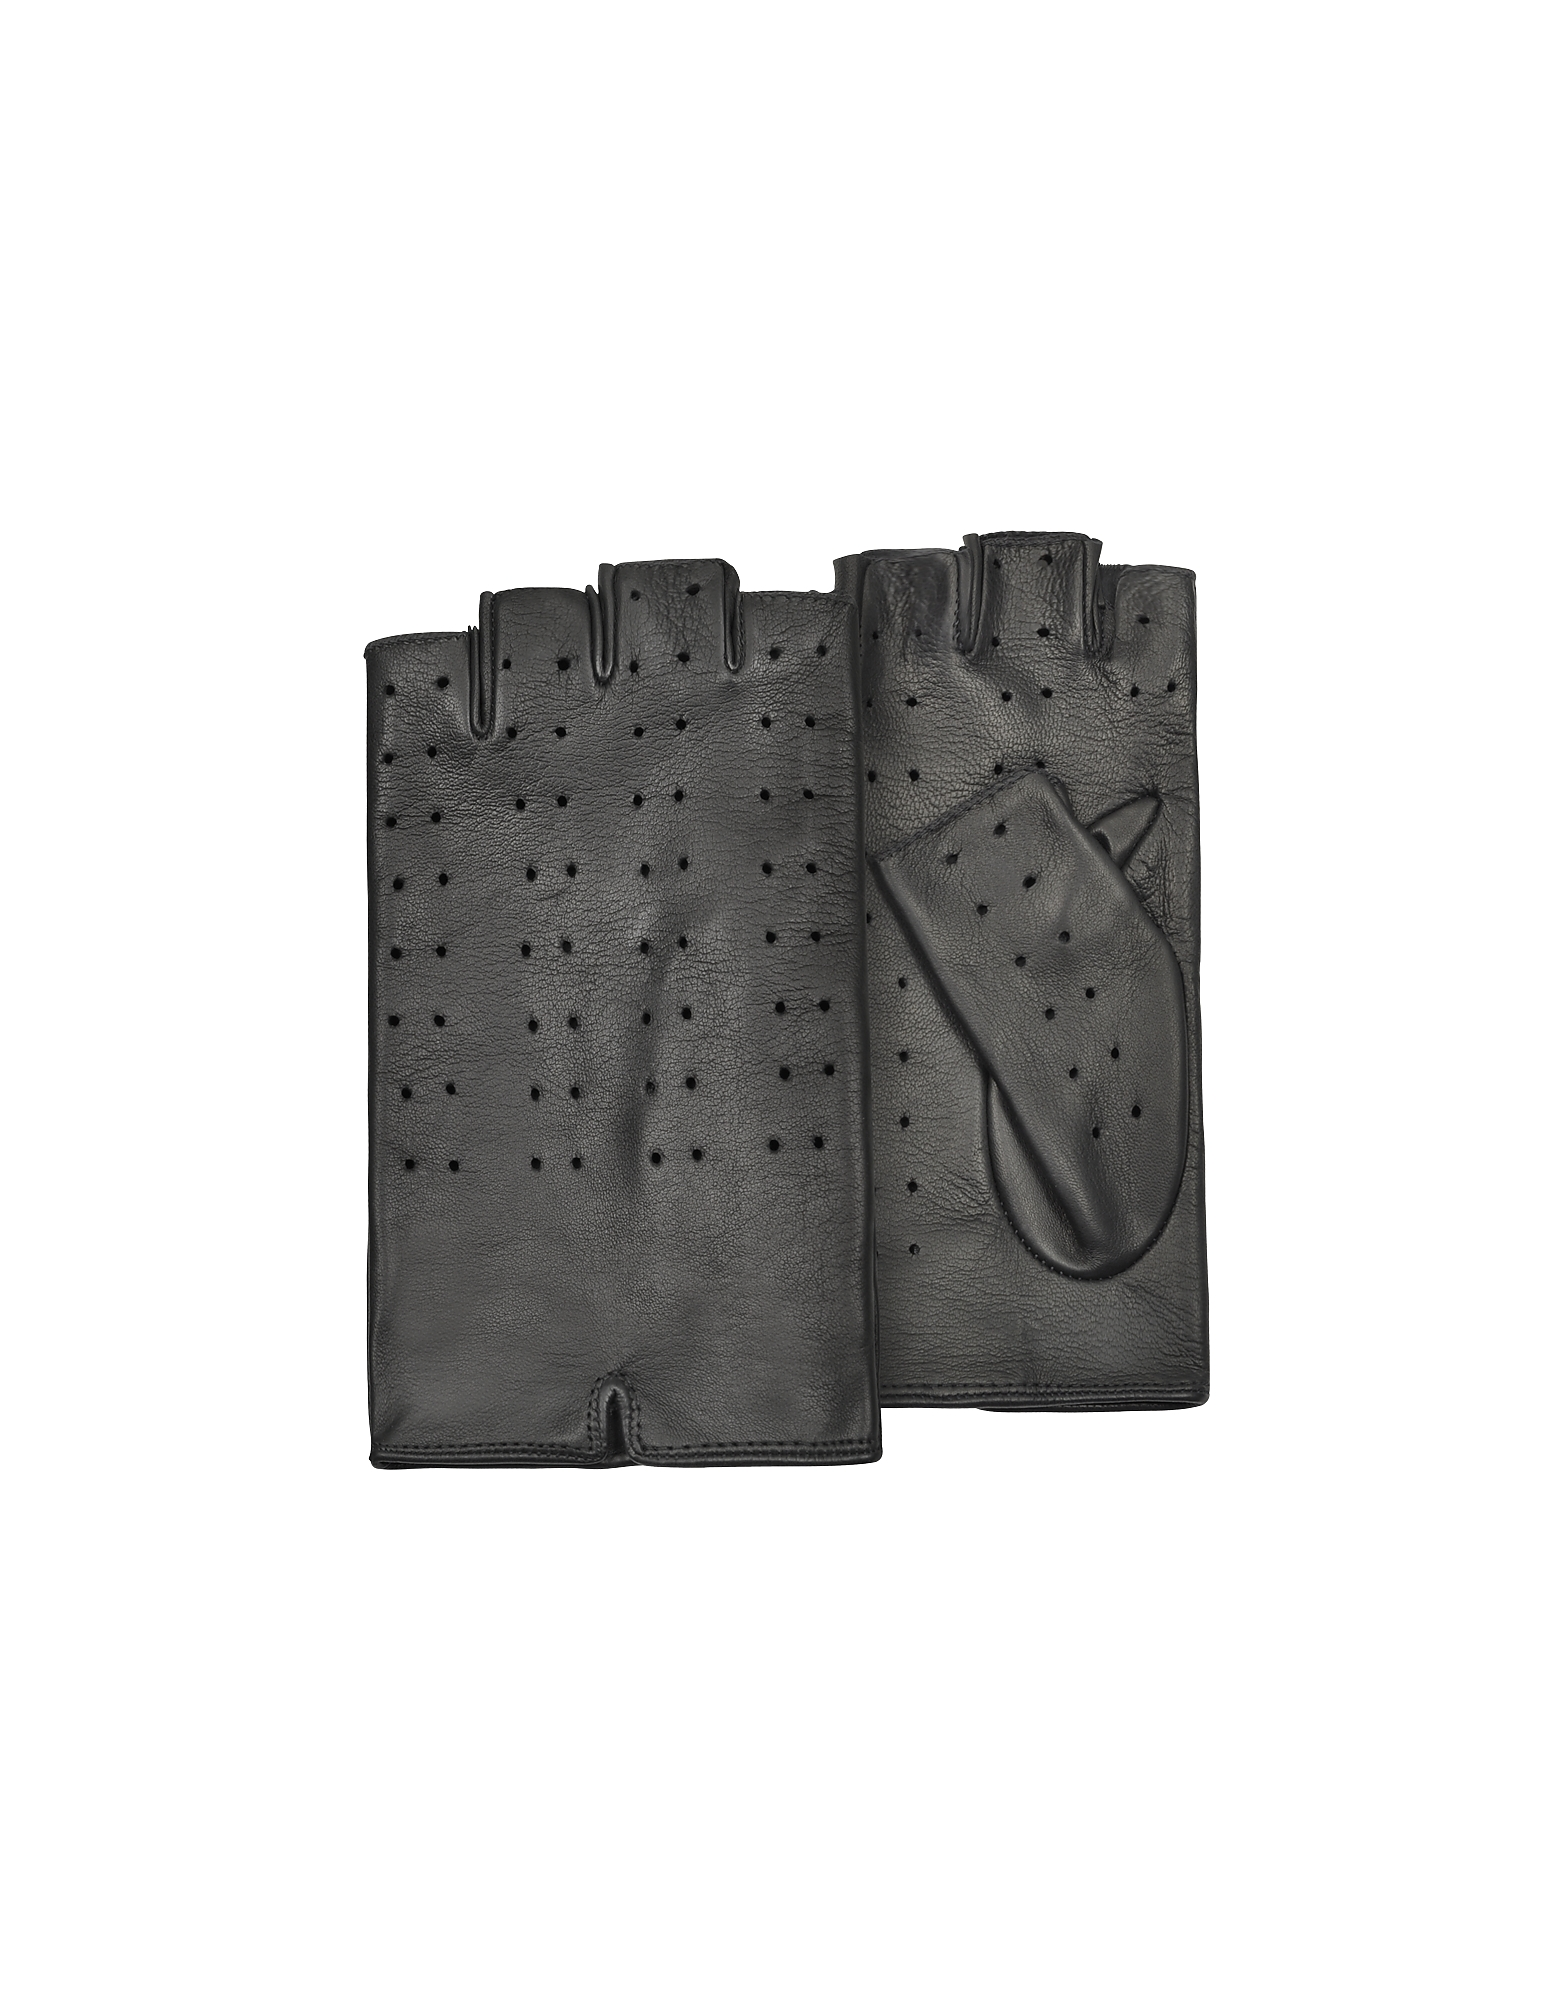 Forzieri Designer Women's Gloves, Women's Black Perforated Fingerless Leather Gloves